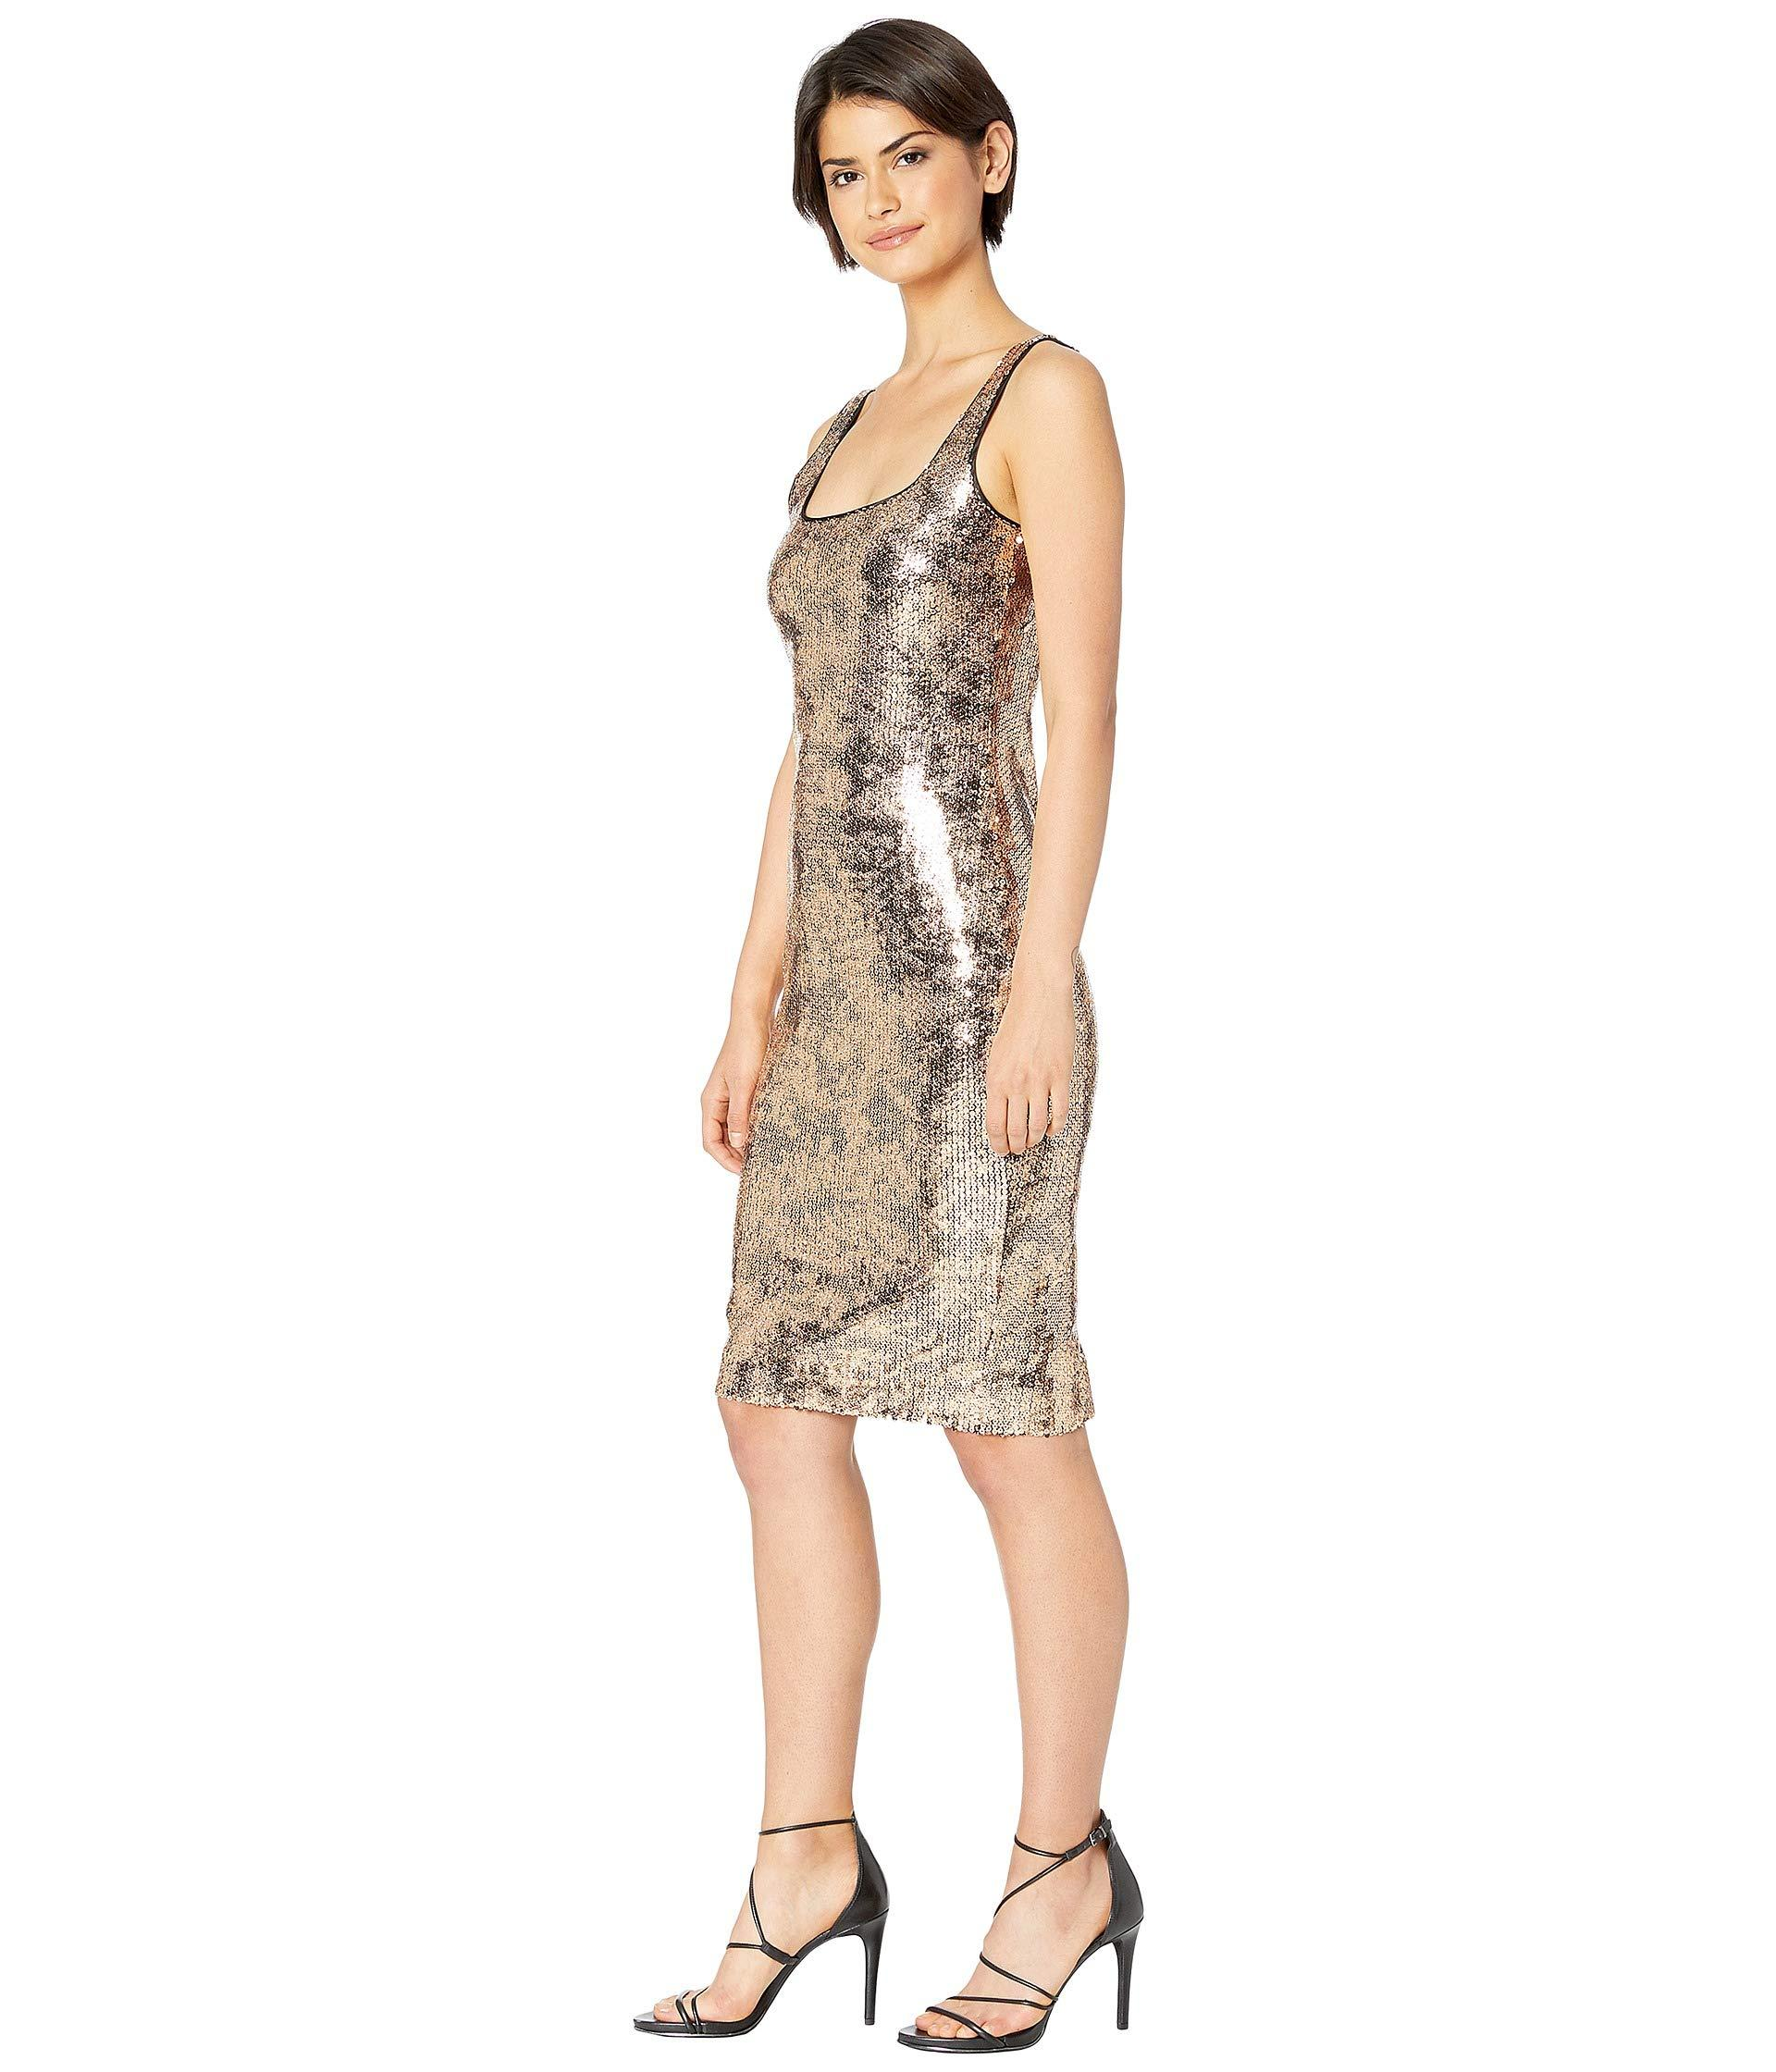 7096bc7269 Lyst - Bardot Sequin Neve Dress in Metallic - Save 33%